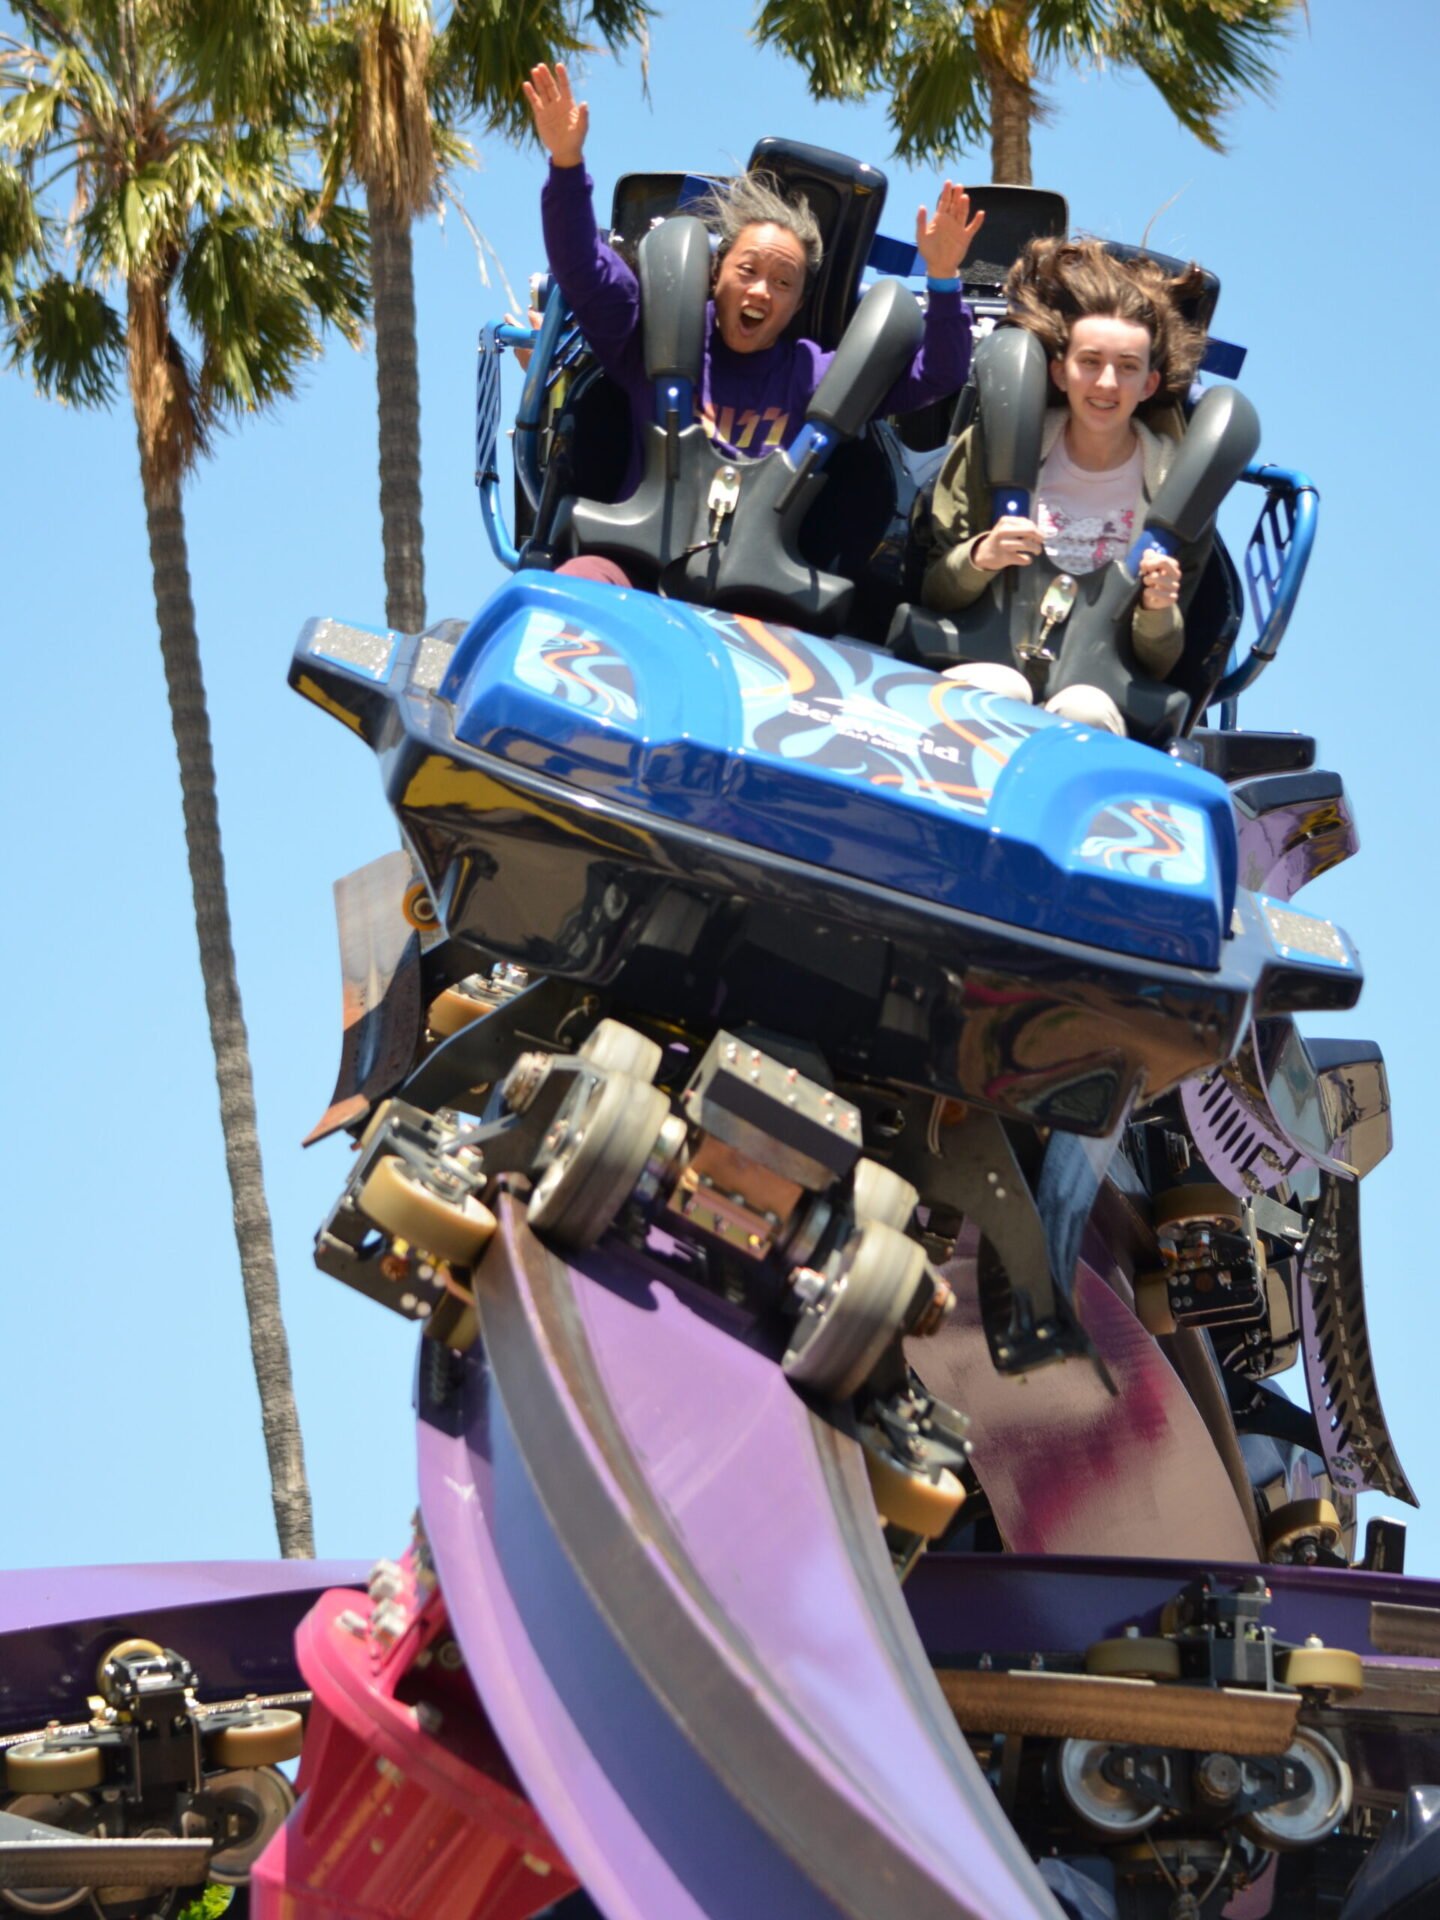 Skyline_Attractions_Thrill_Rides_Rectangle